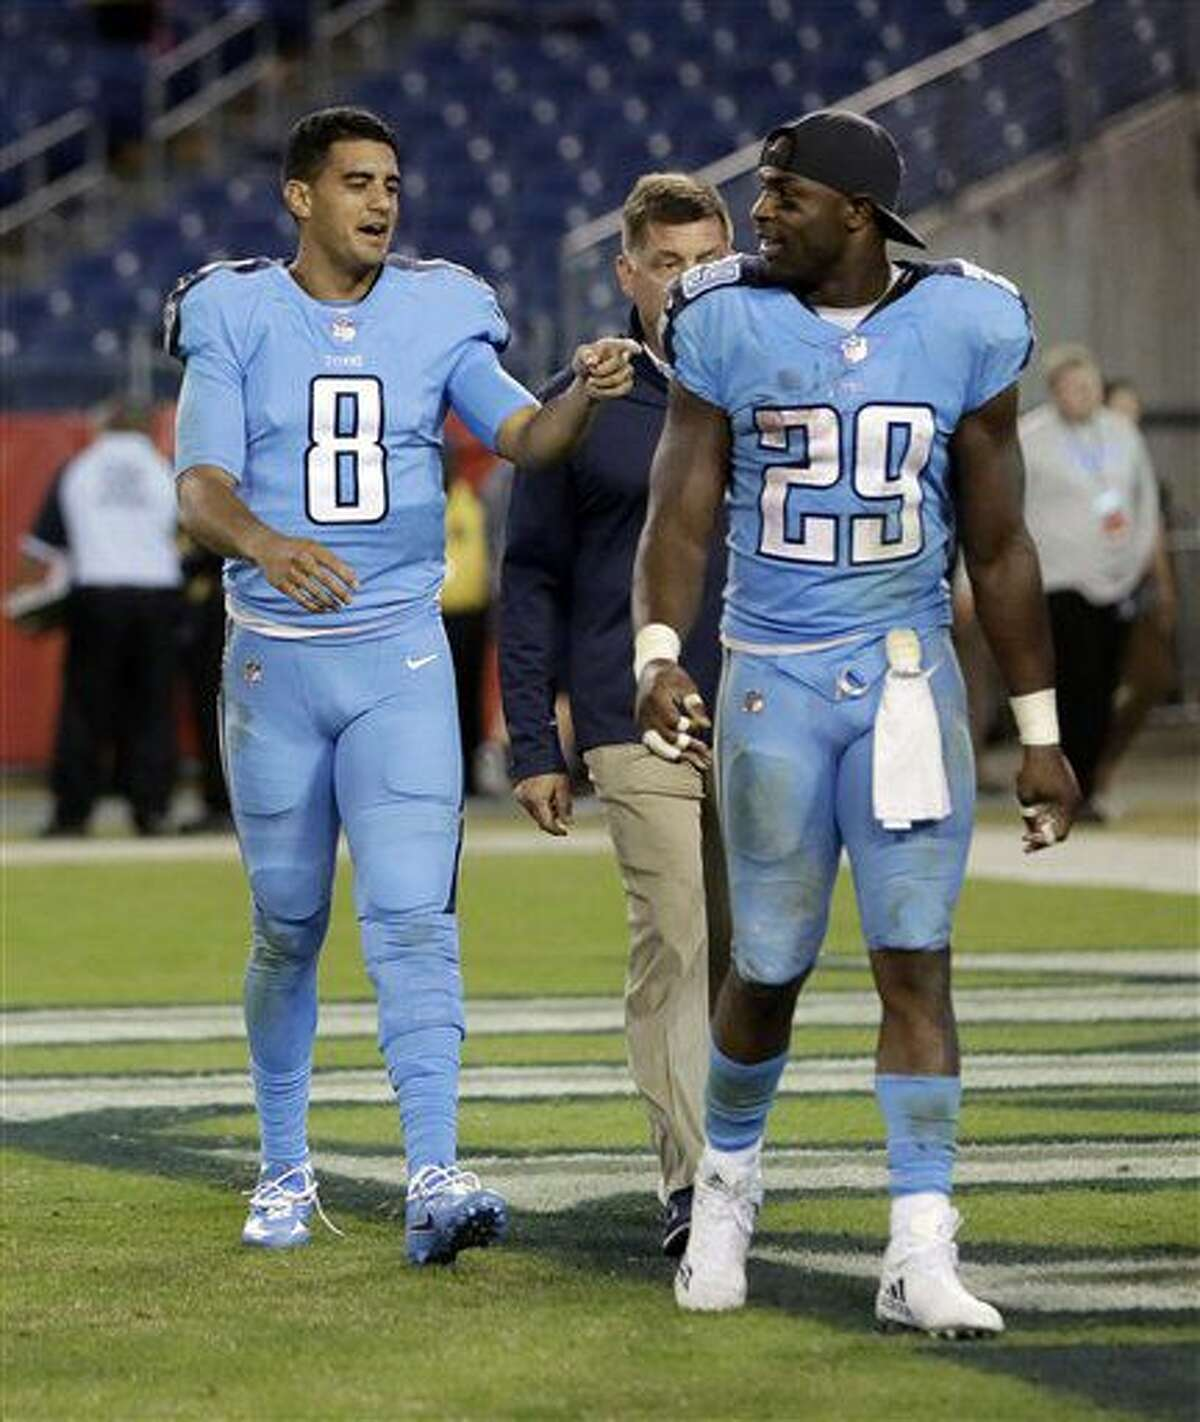 Tennessee Titans quarterback Marcus Mariota (8) talks with running back DeMarco Murray (29) after an NFL football game between the Titans and the Jacksonville Jaguars Thursday, Oct. 27, 2016, in Nashville, Tenn. The Titans won 36-22. (AP Photo/James Kenney)